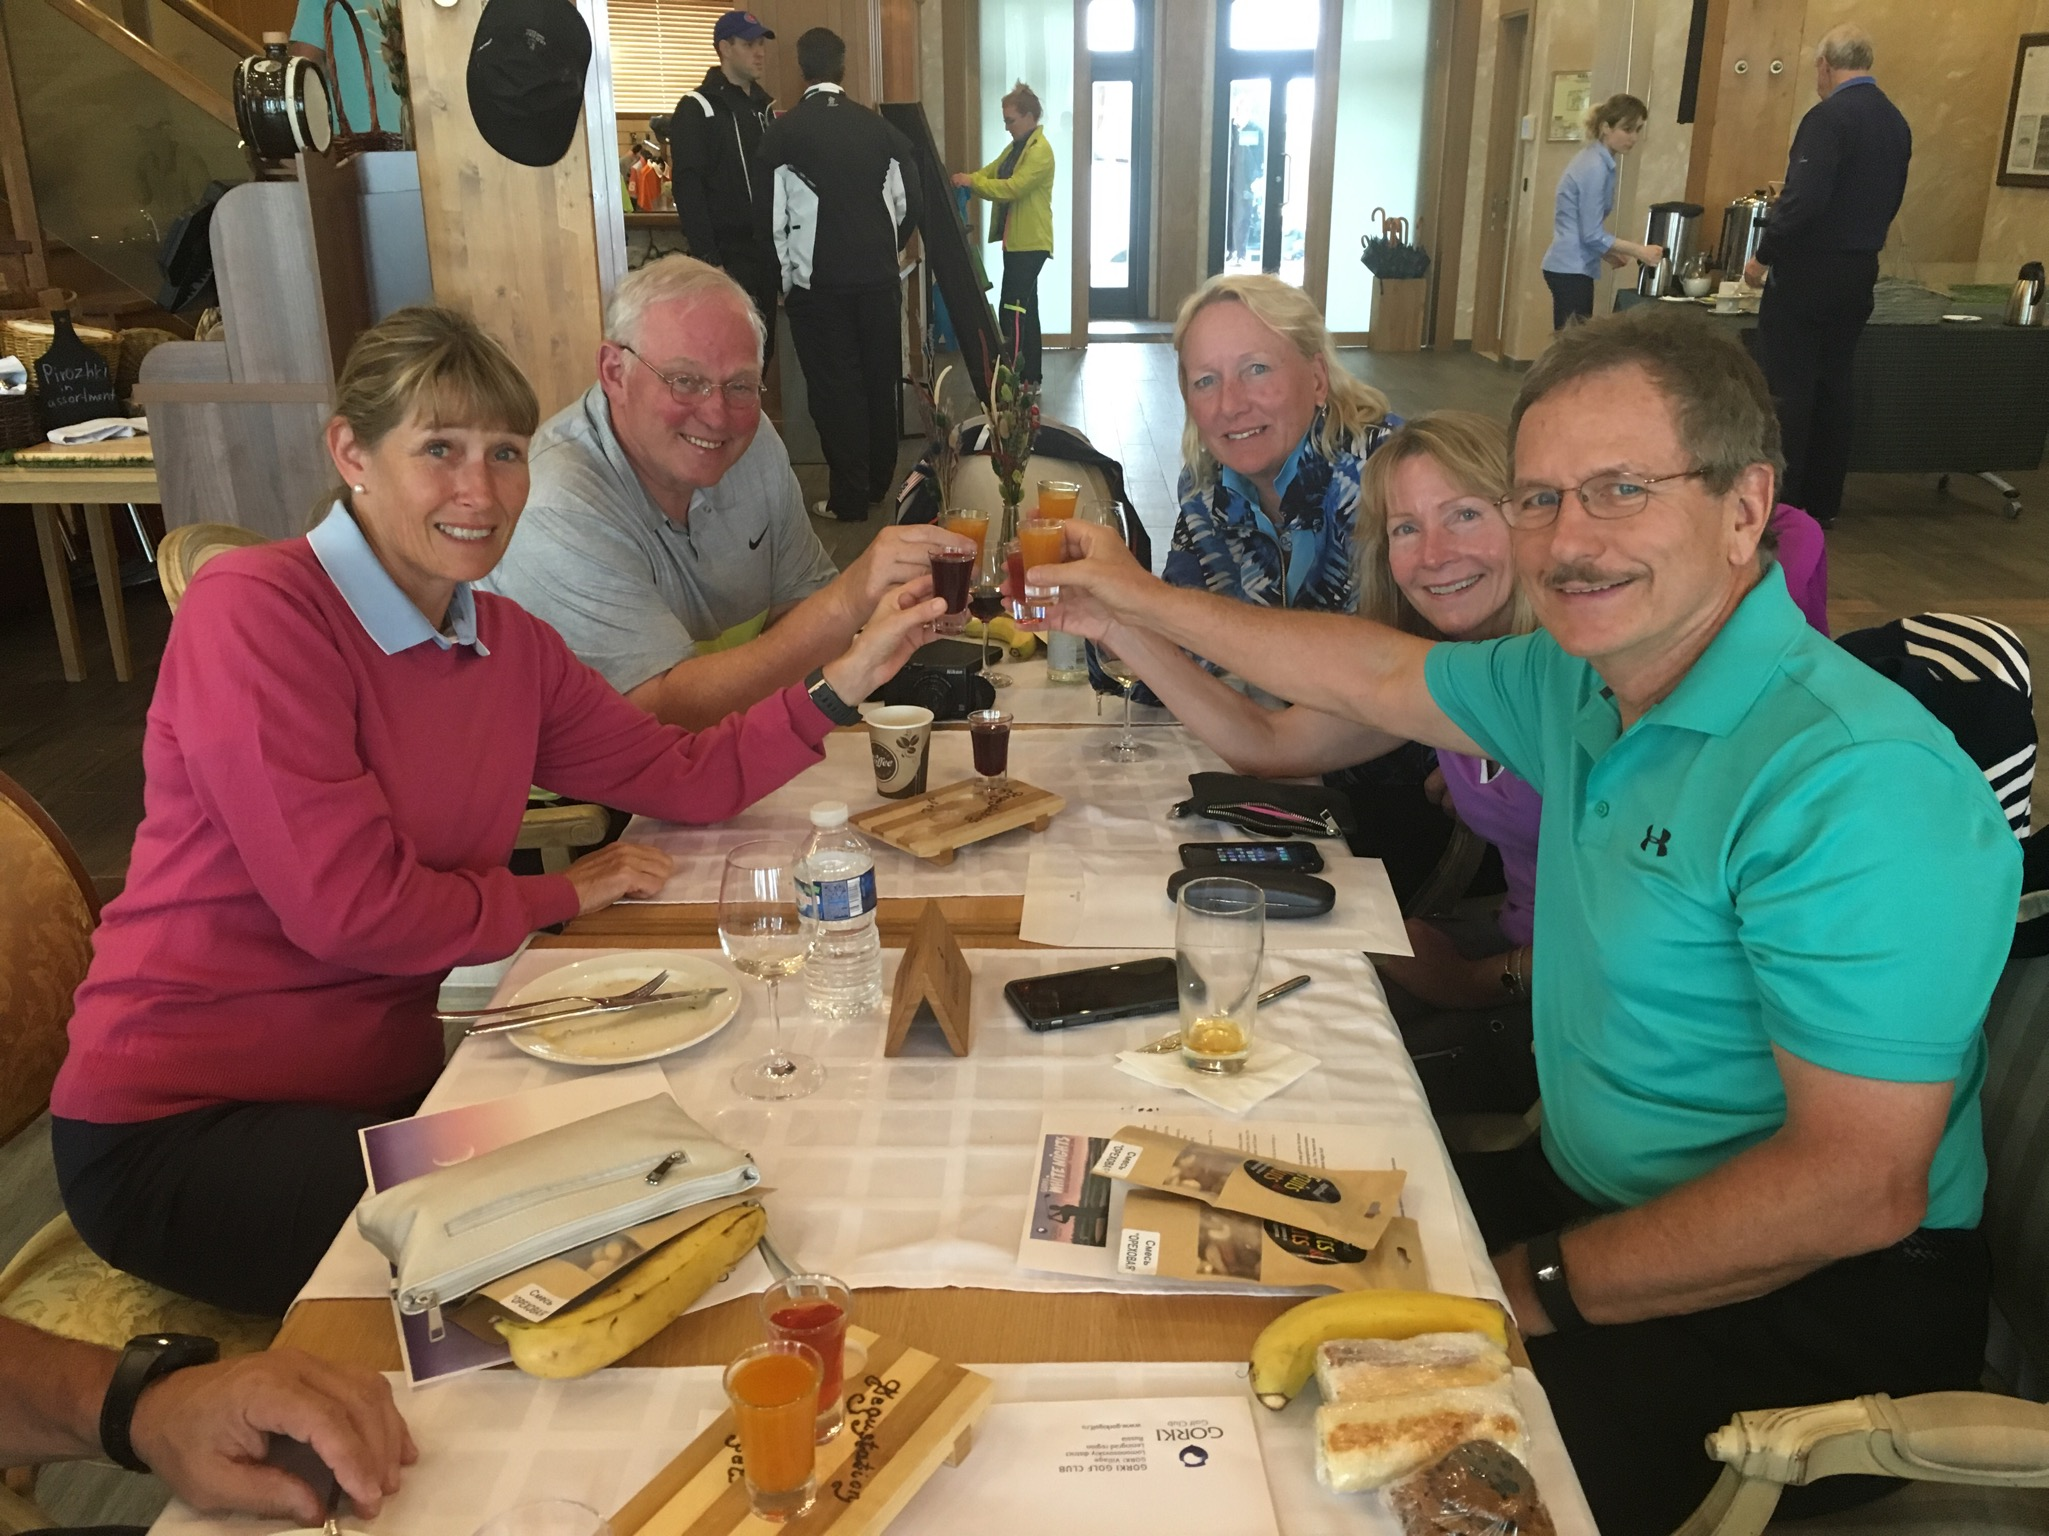 2016 Baltic Sea PerryGolf Cruise - Gorki Golf Club - PerryGolf.com